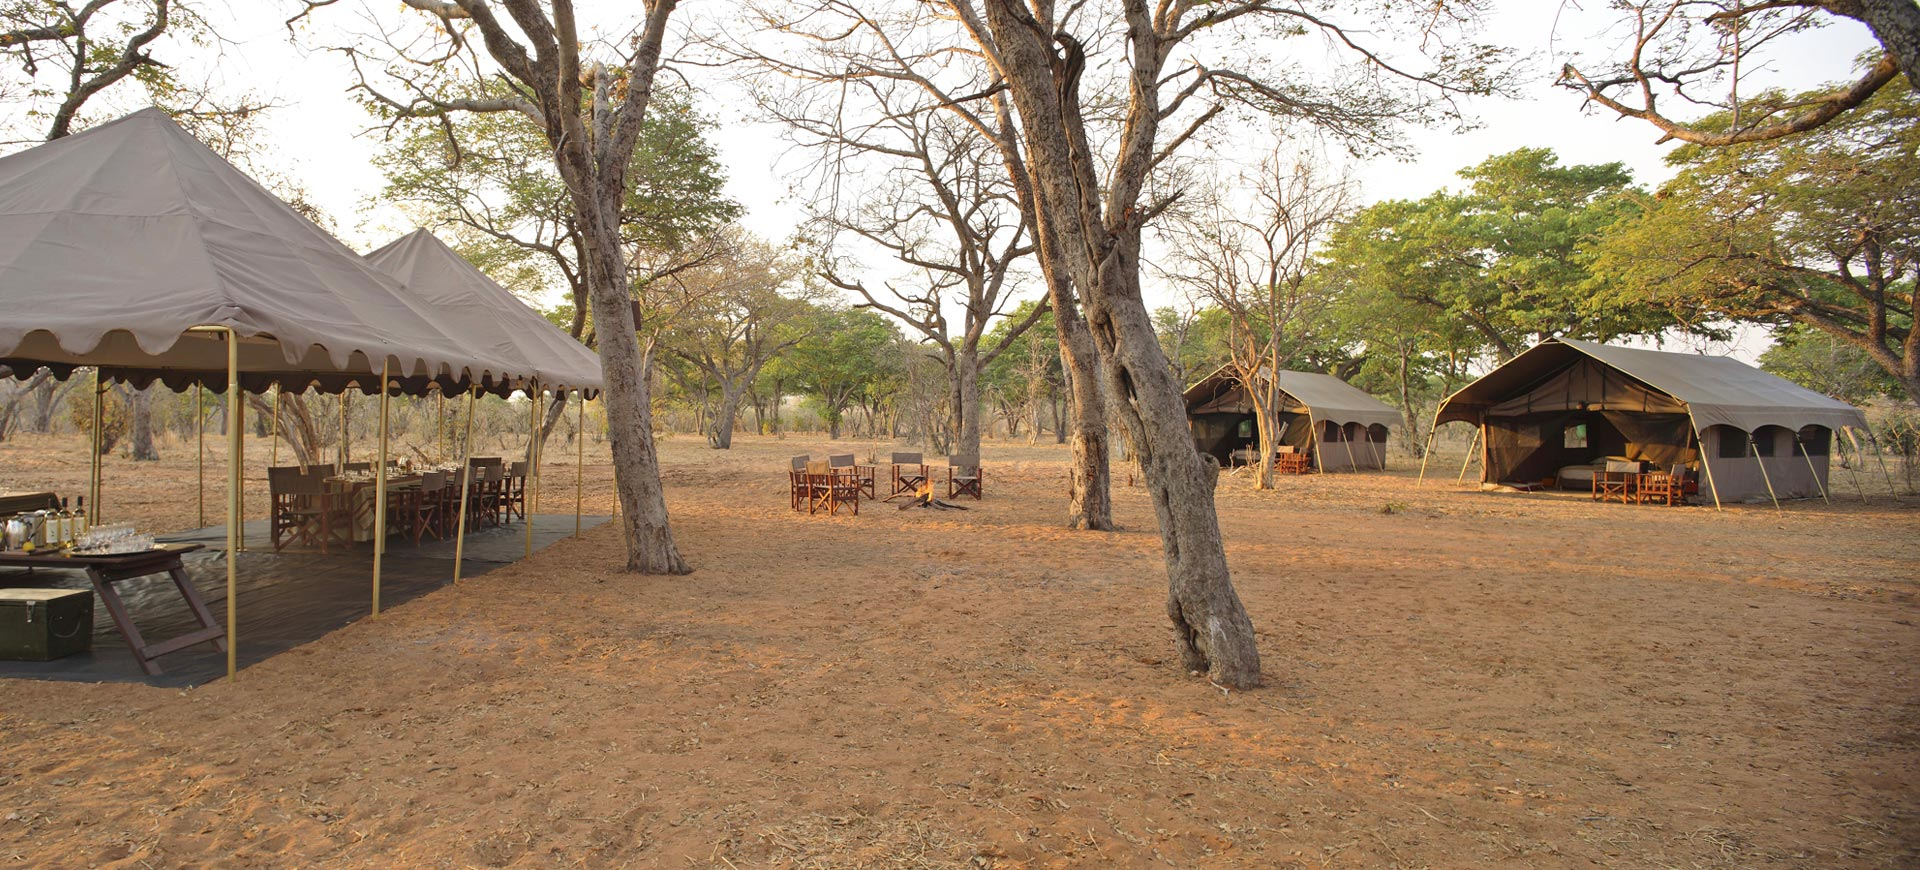 Chobe Under Canvas Campsite